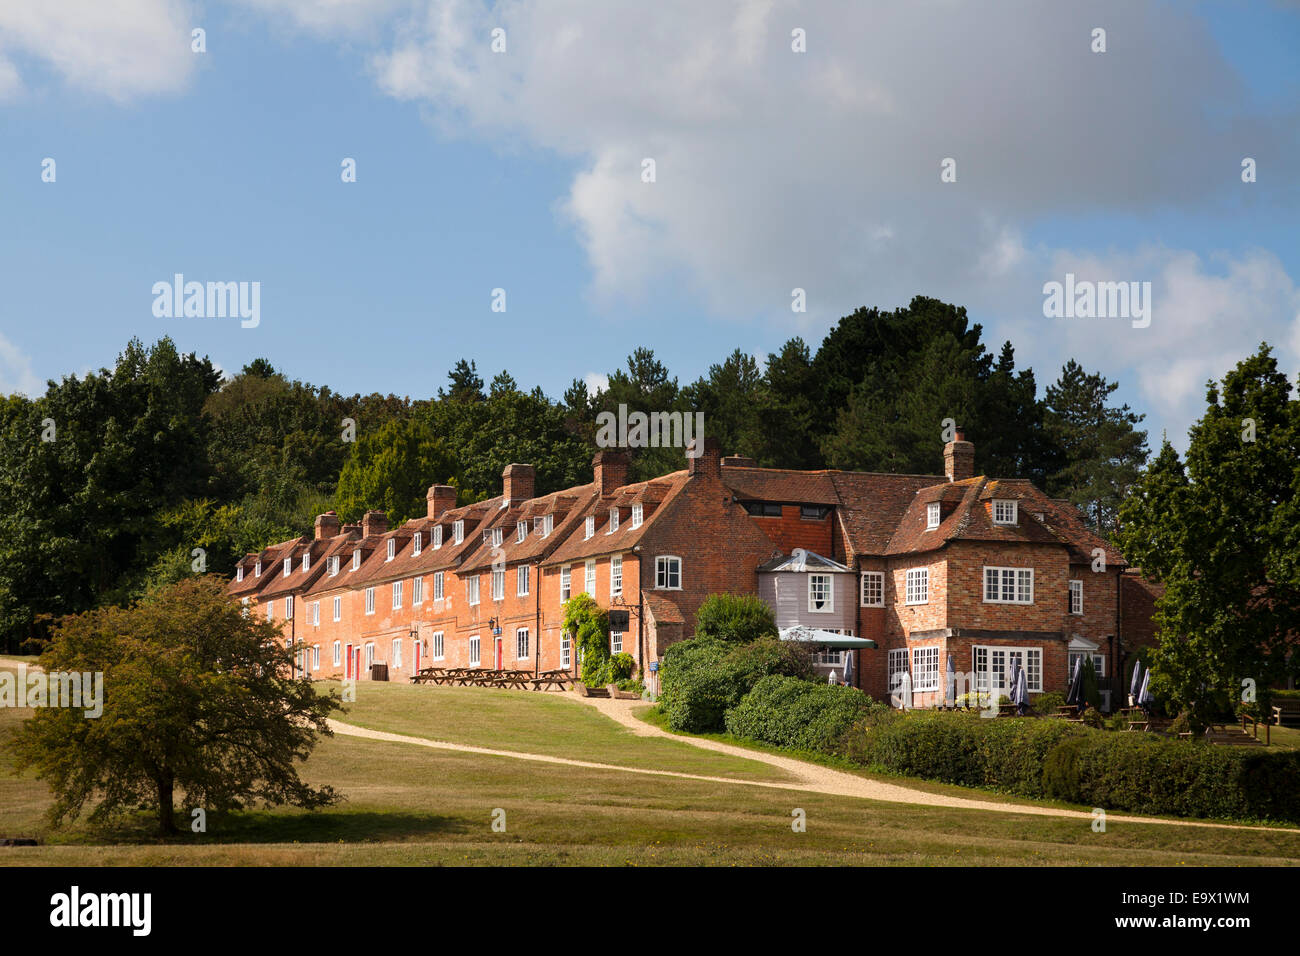 The Master Builders Hotel and 18th Century cottages at Bucklers Hard Stock Photo